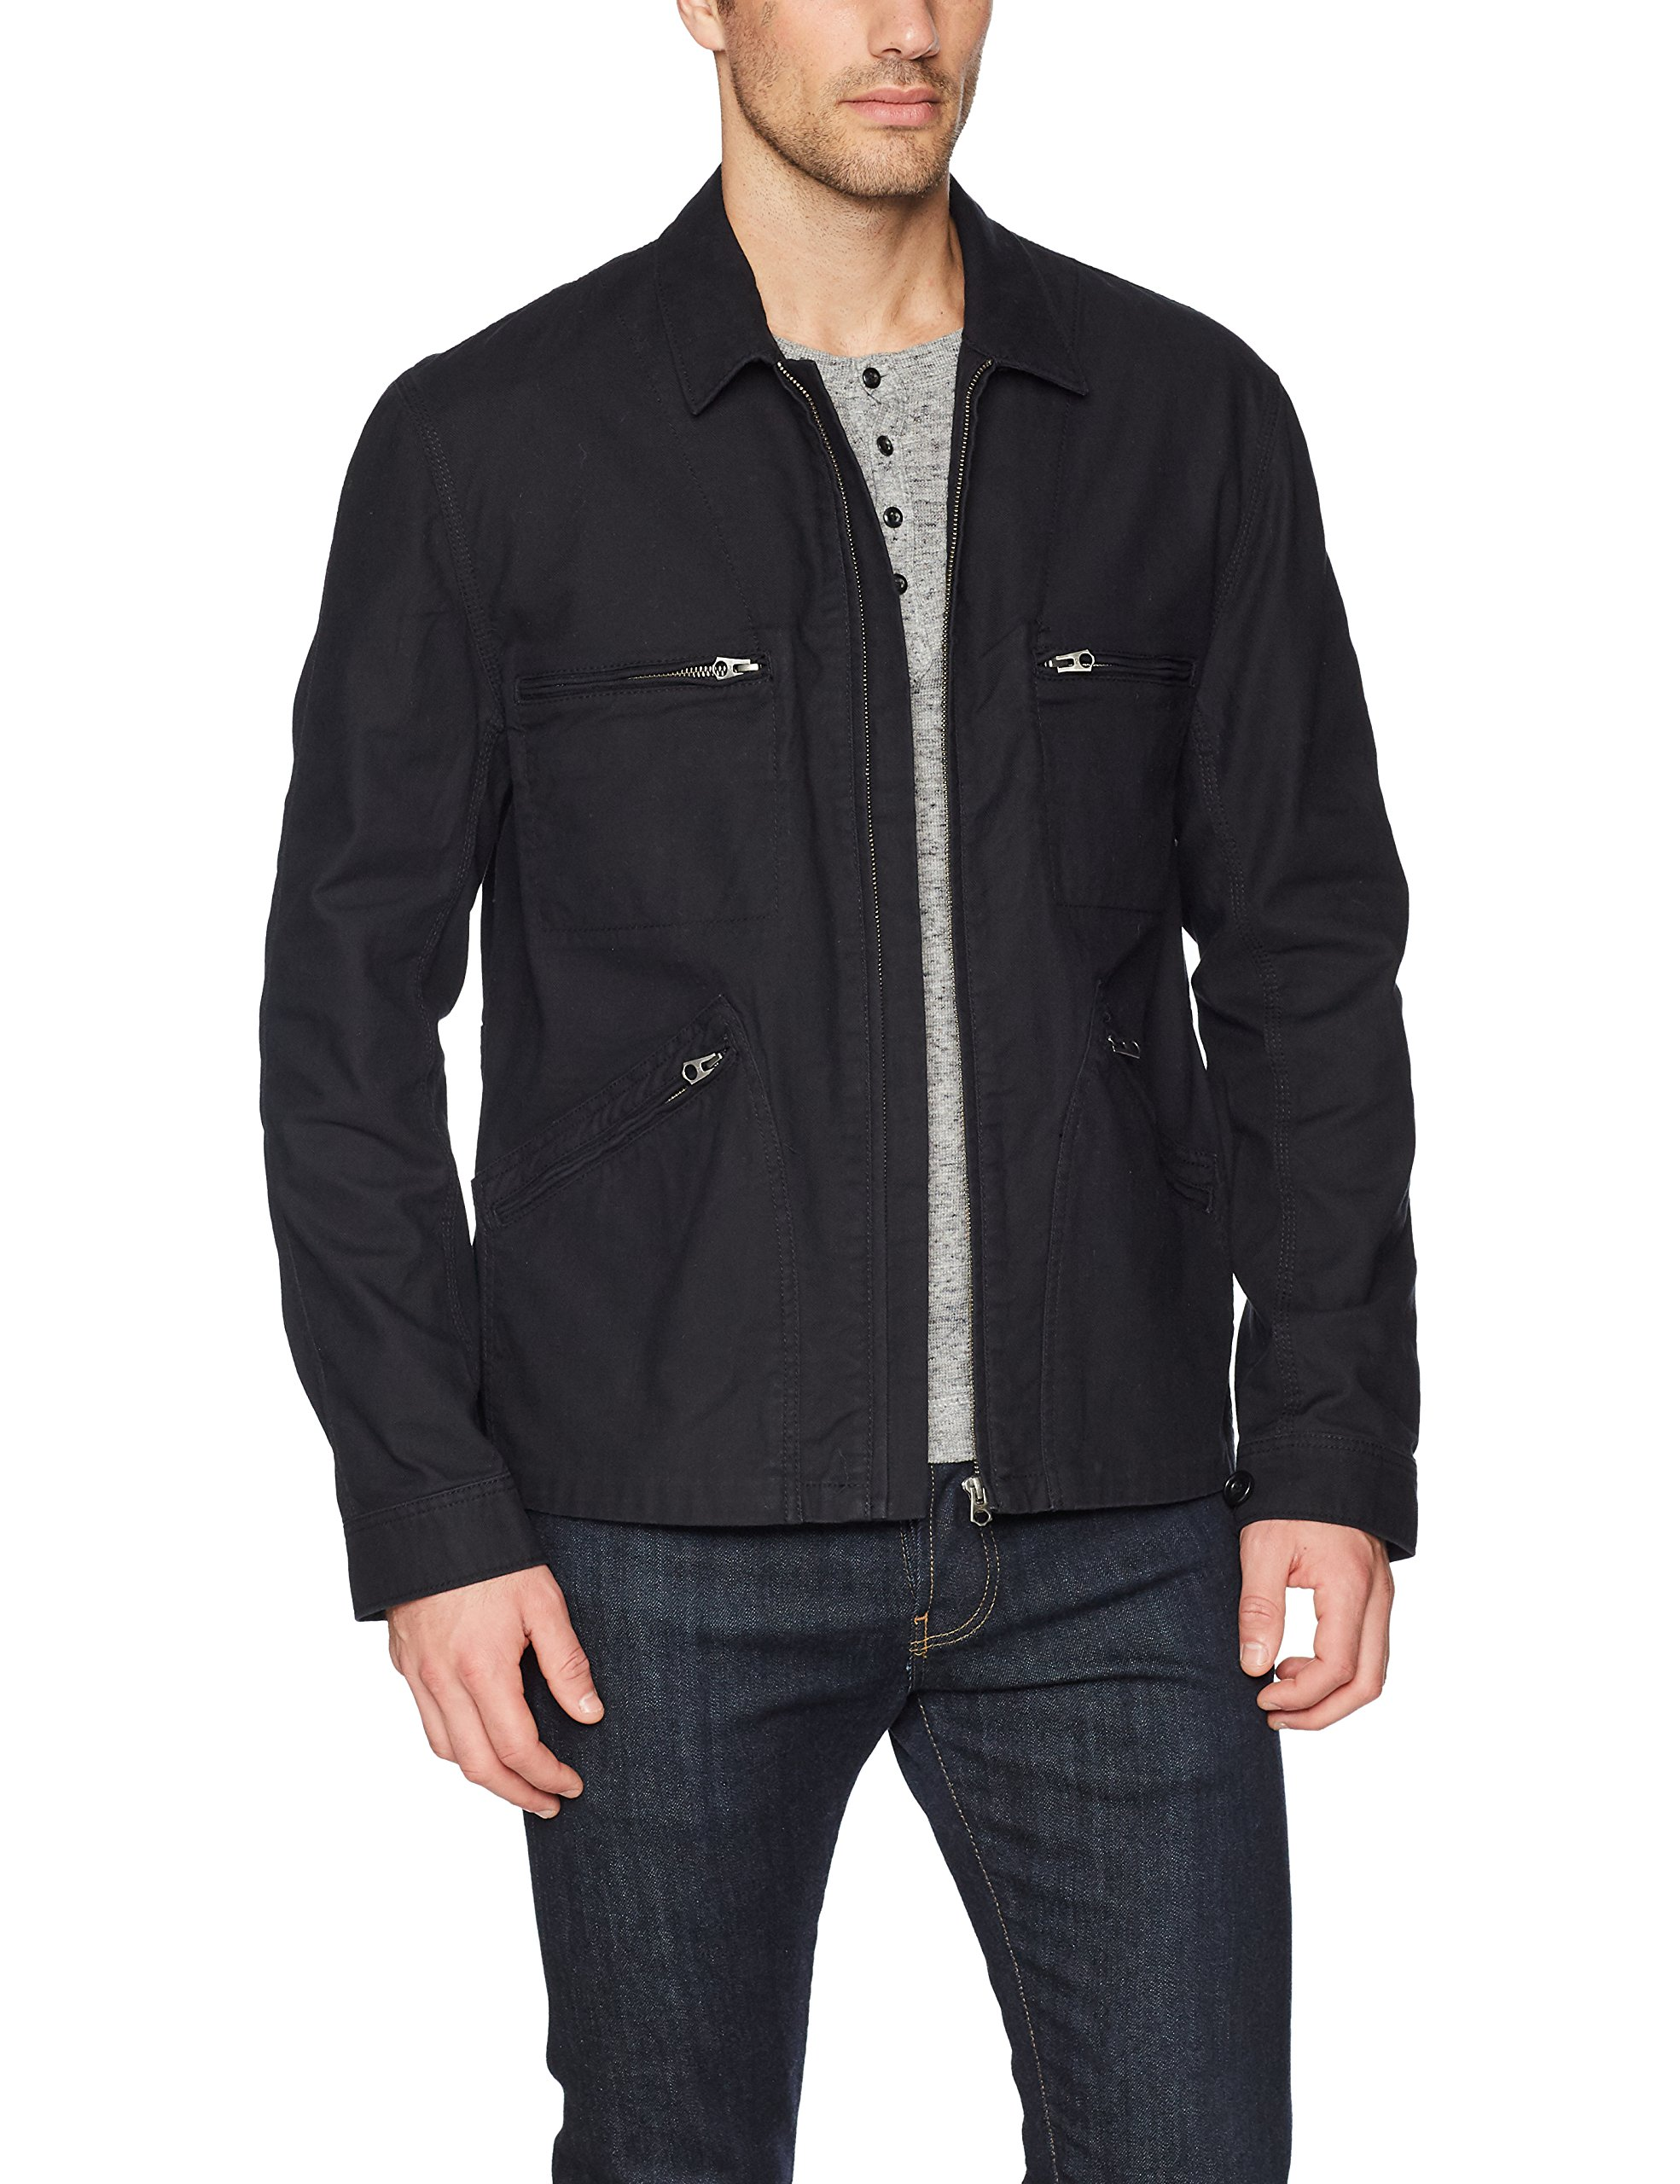 French Connection Men's Slub Stretch Twill Jacket with Zippers, Black, XL